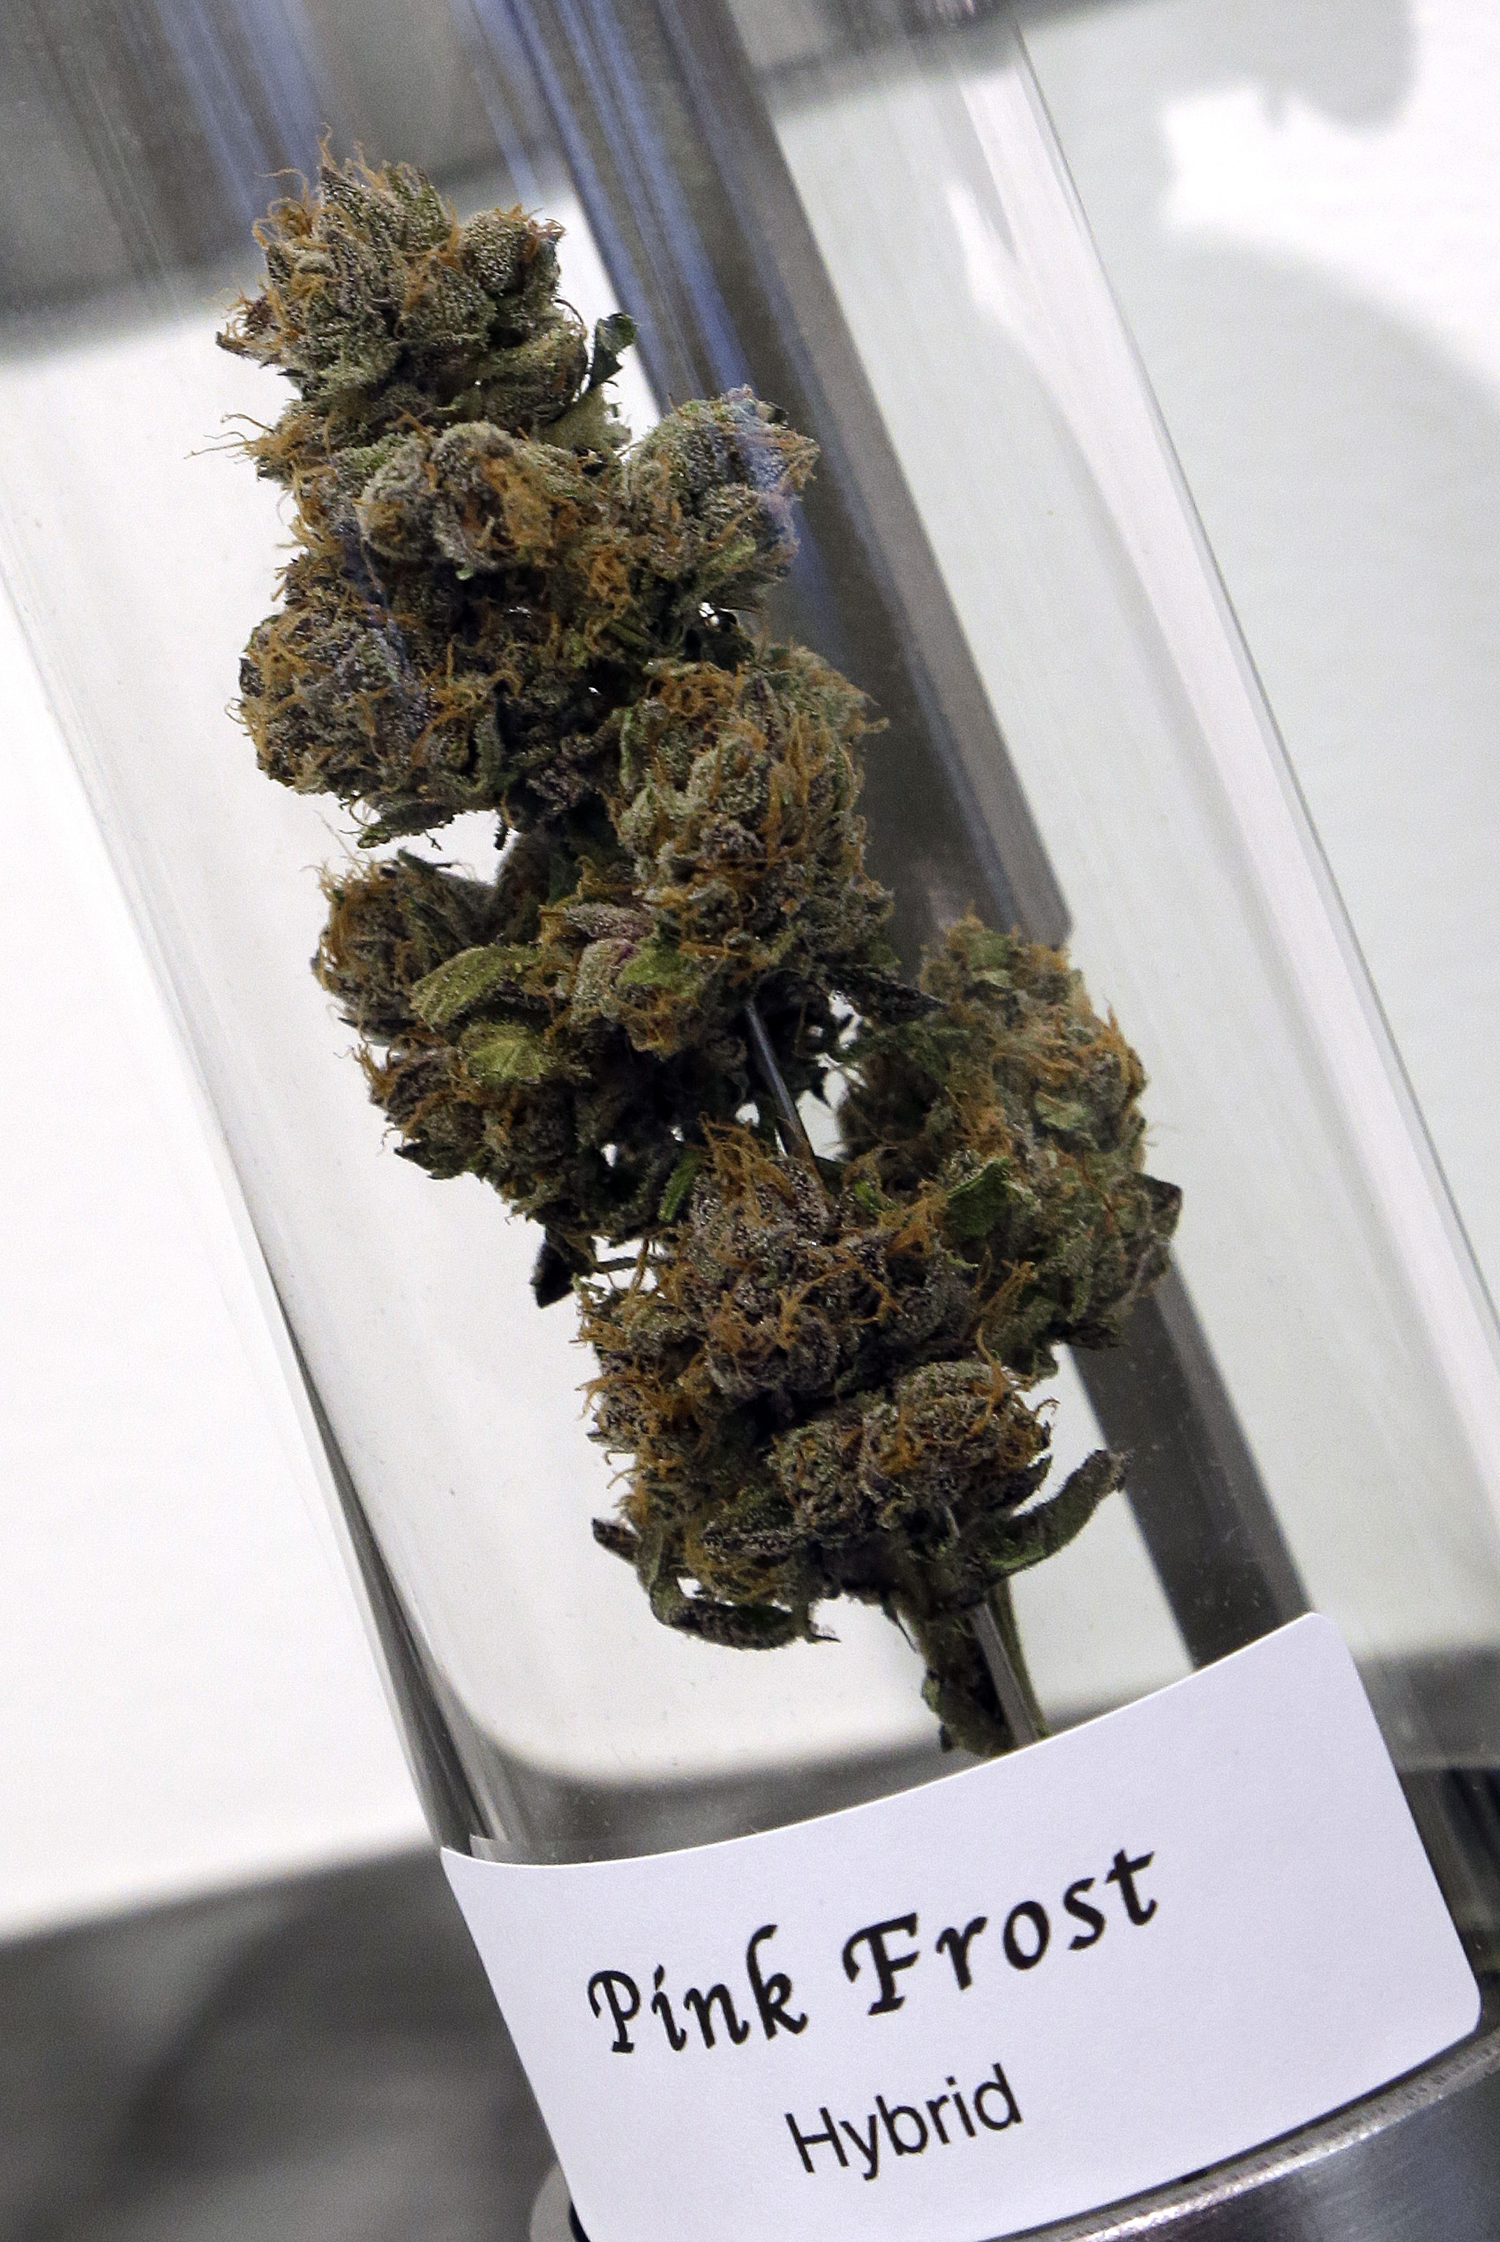 A sample of cannabis appears on display at Shango Premium Cannabis dispensary in Portland, Ore.